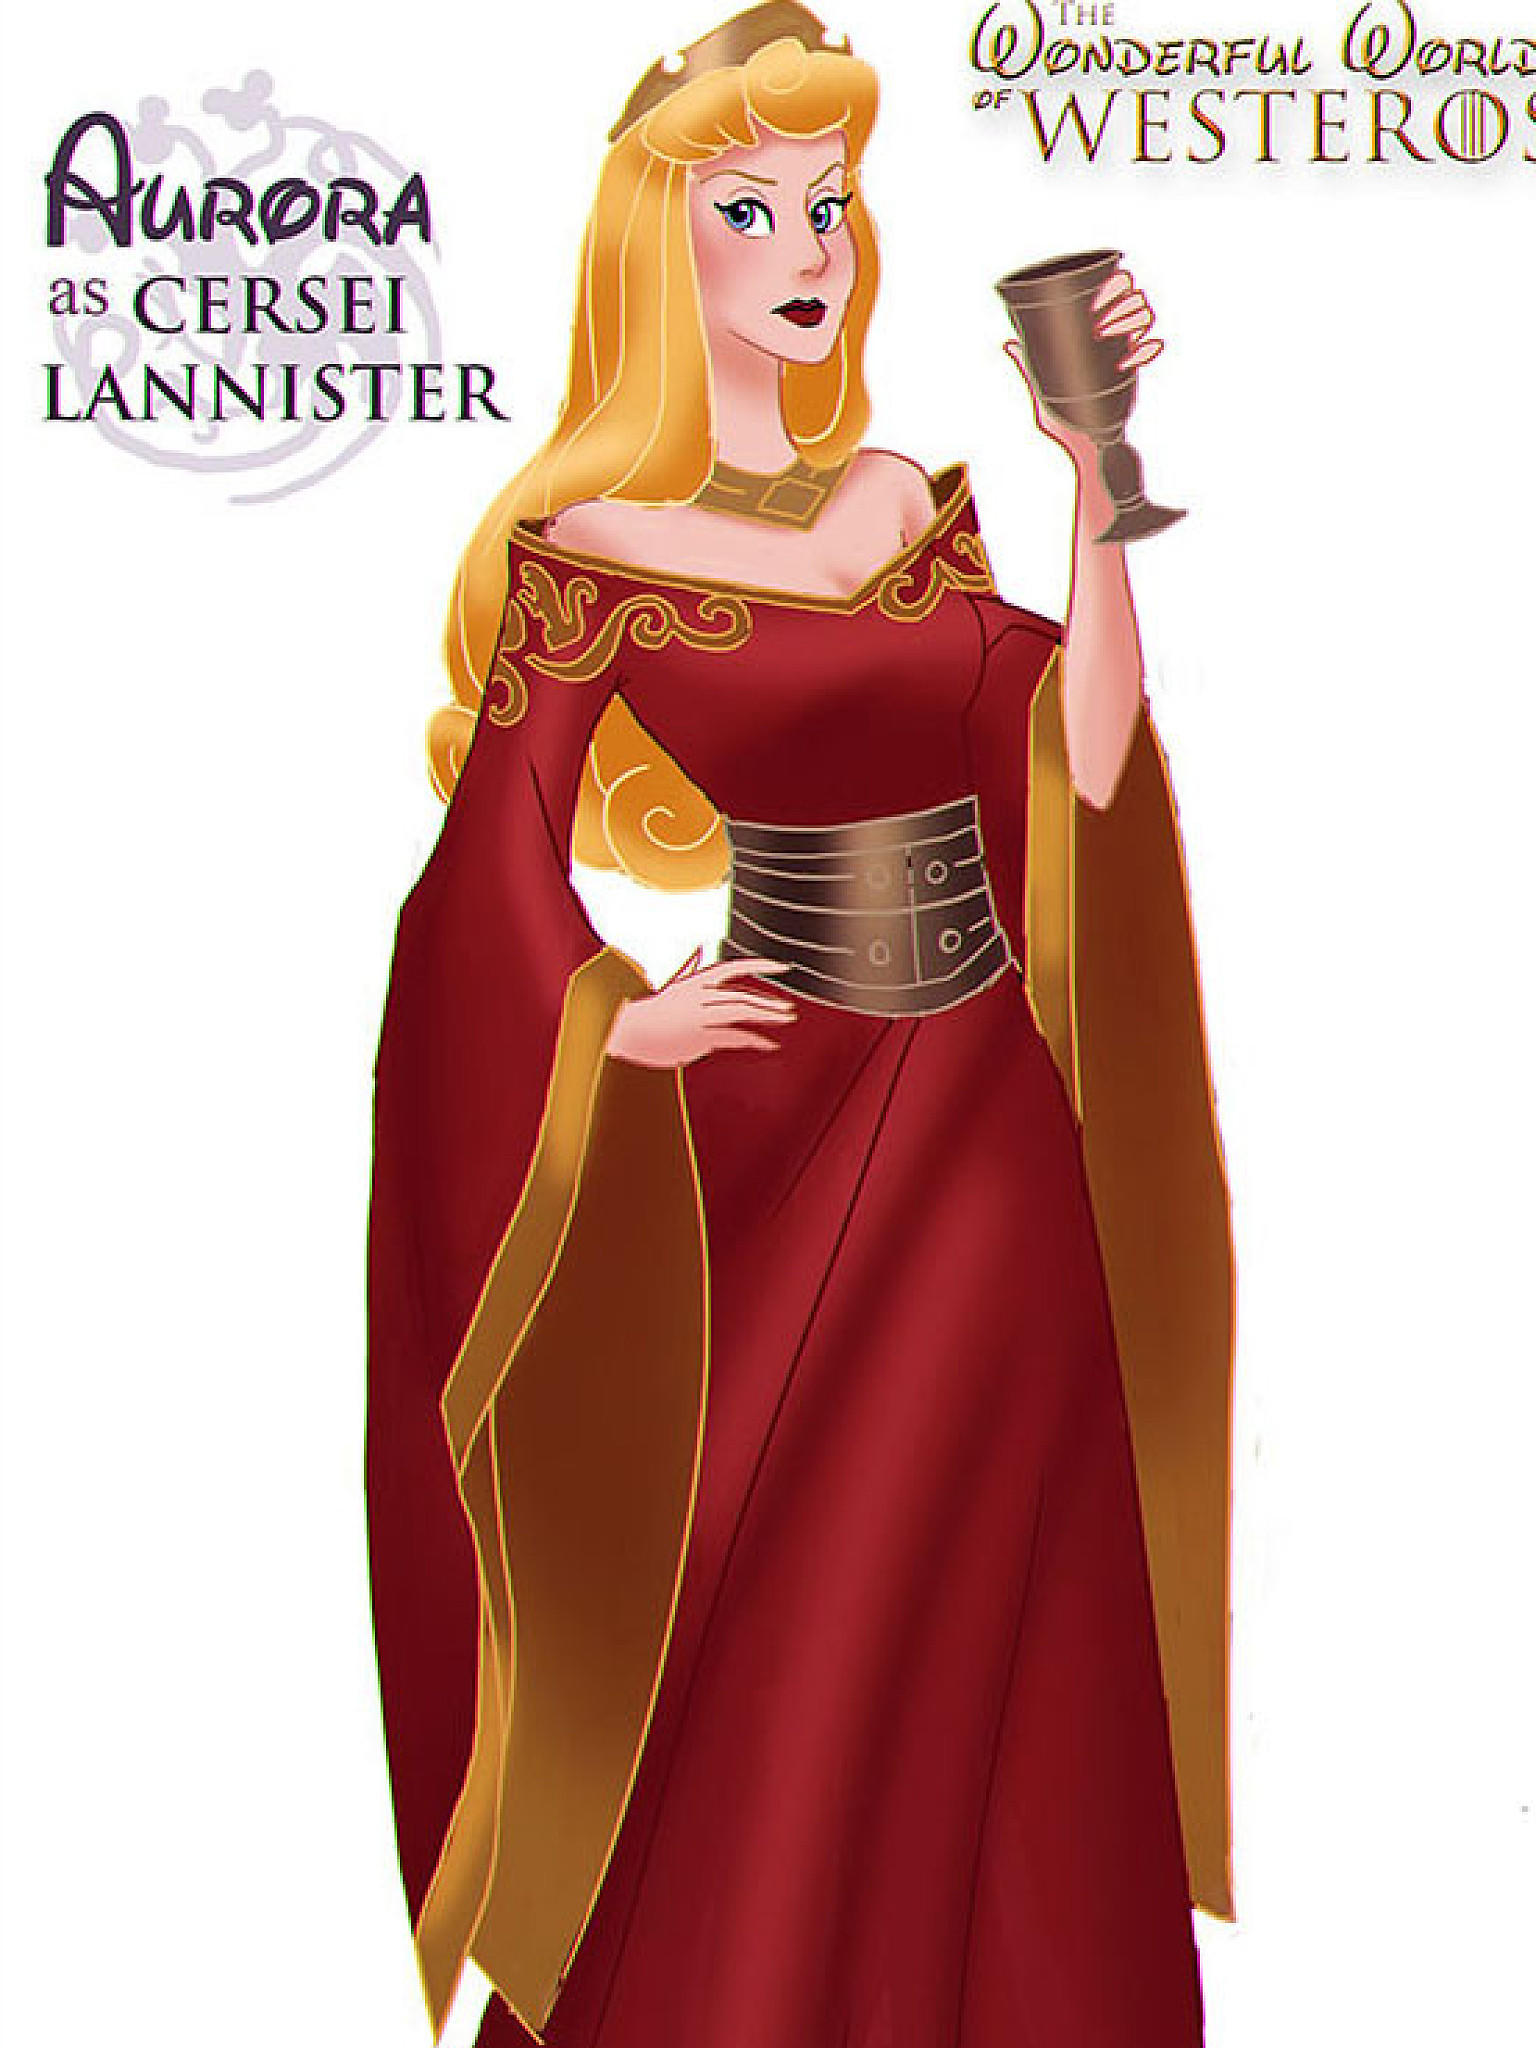 VIP Disney meets Game of Thrones